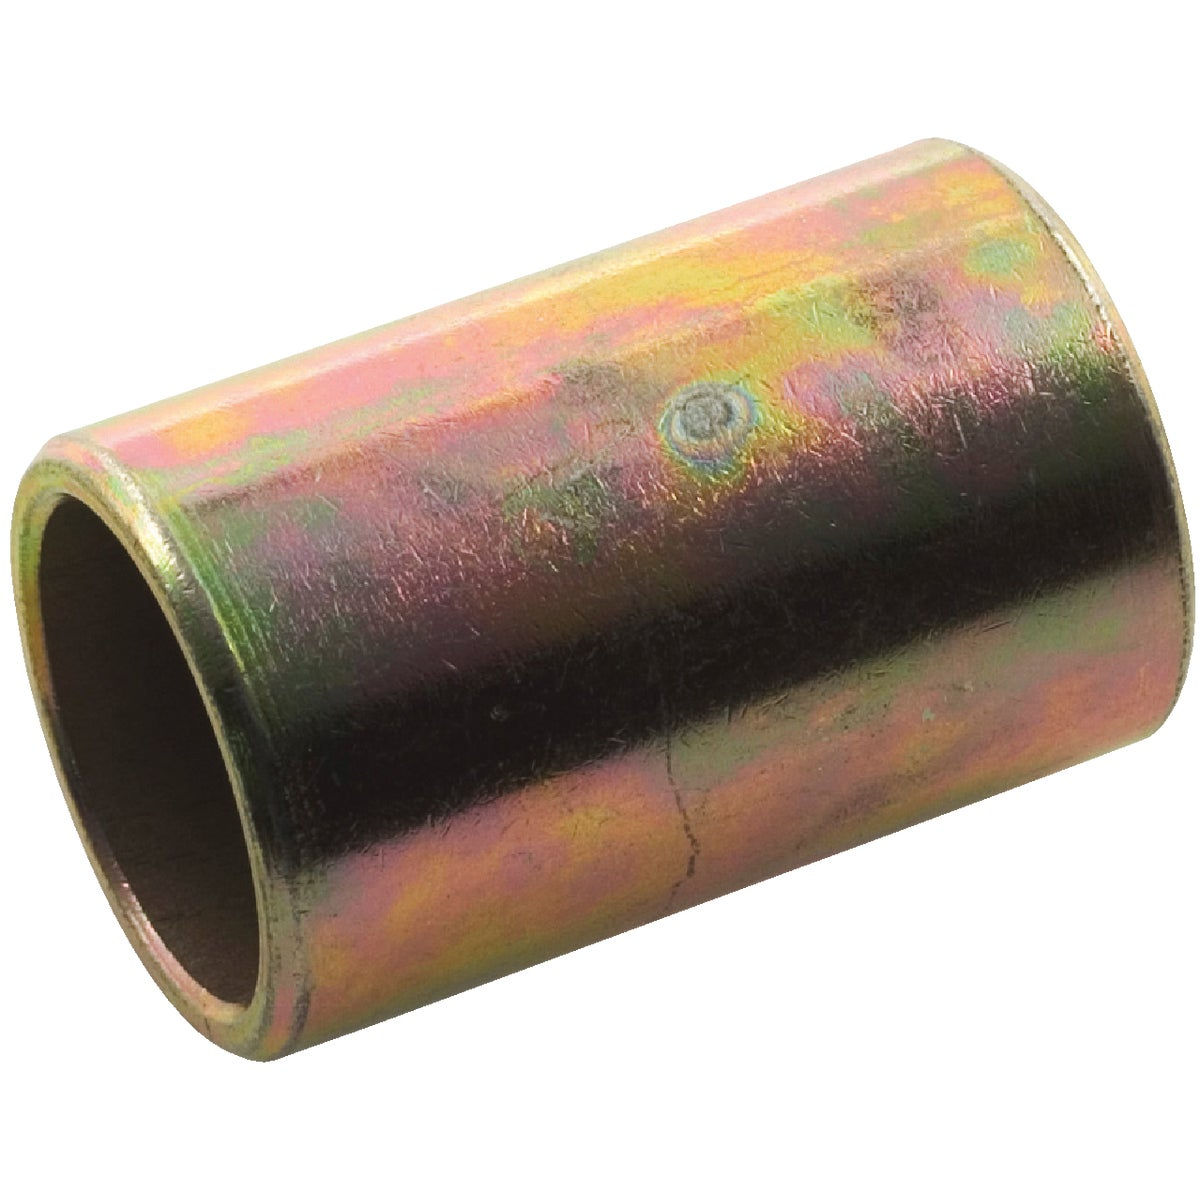 LIFT ARM REDUCER BUSHING - S08020100-B821 by Speeco Farmex